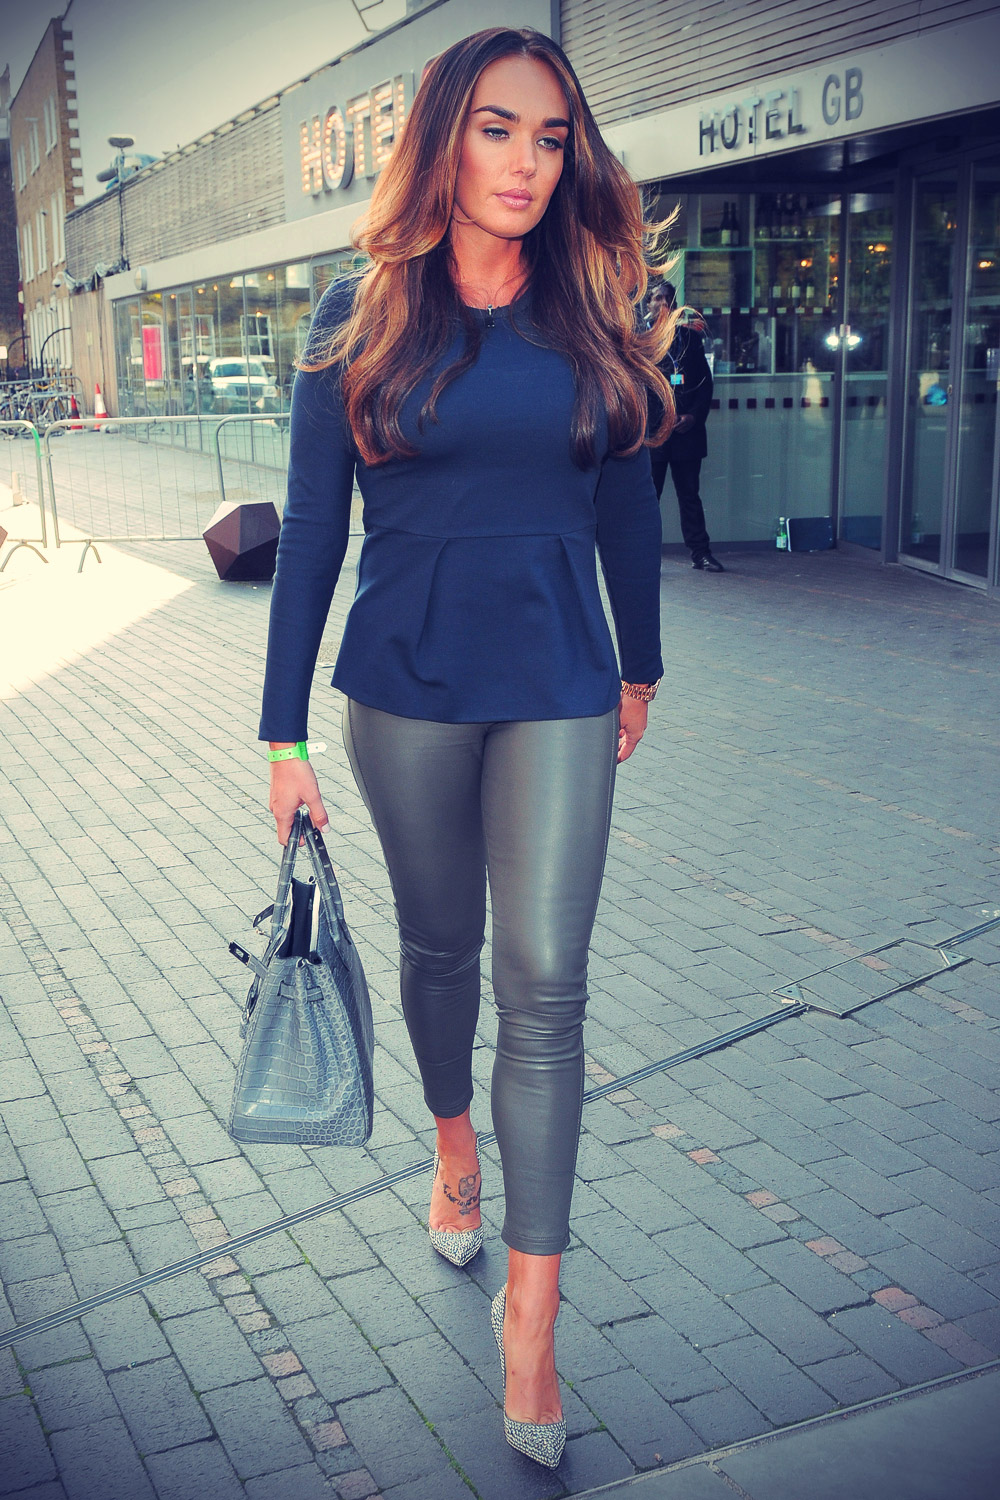 Tamara Ecclestone leaving Hotel GB